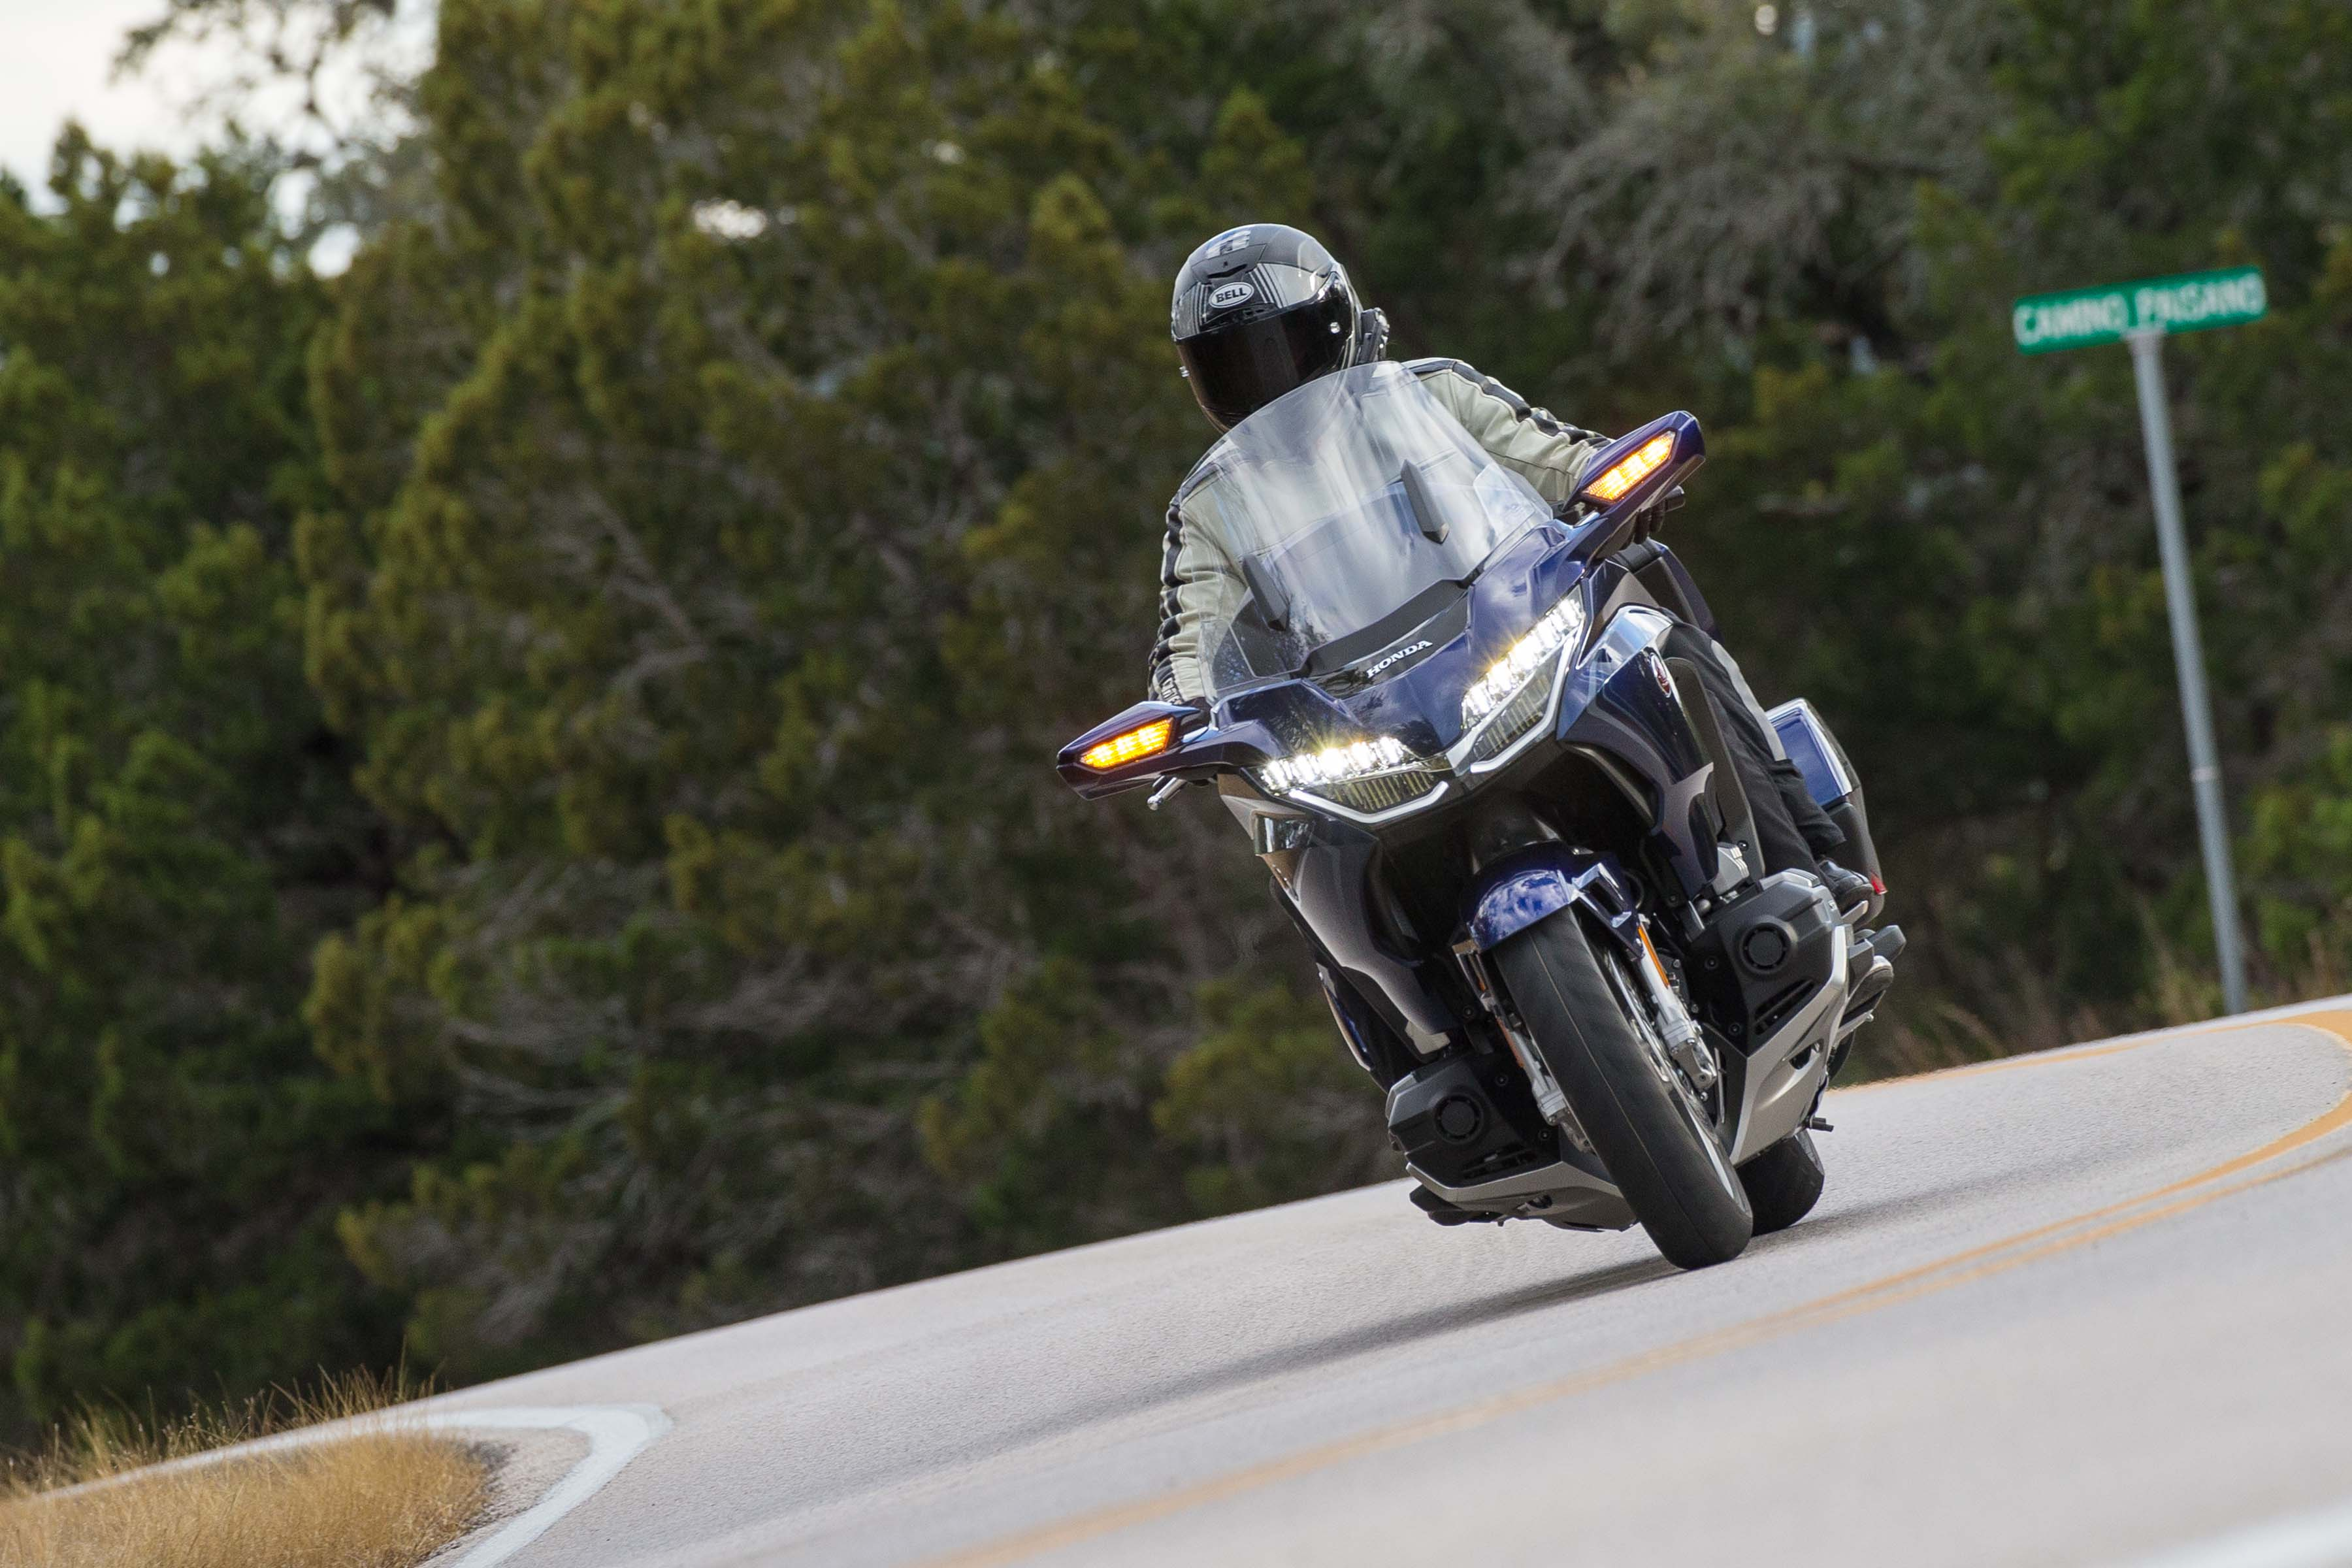 What You Need to Know About the 2018 Honda Gold Wing - Asphalt & Rubber